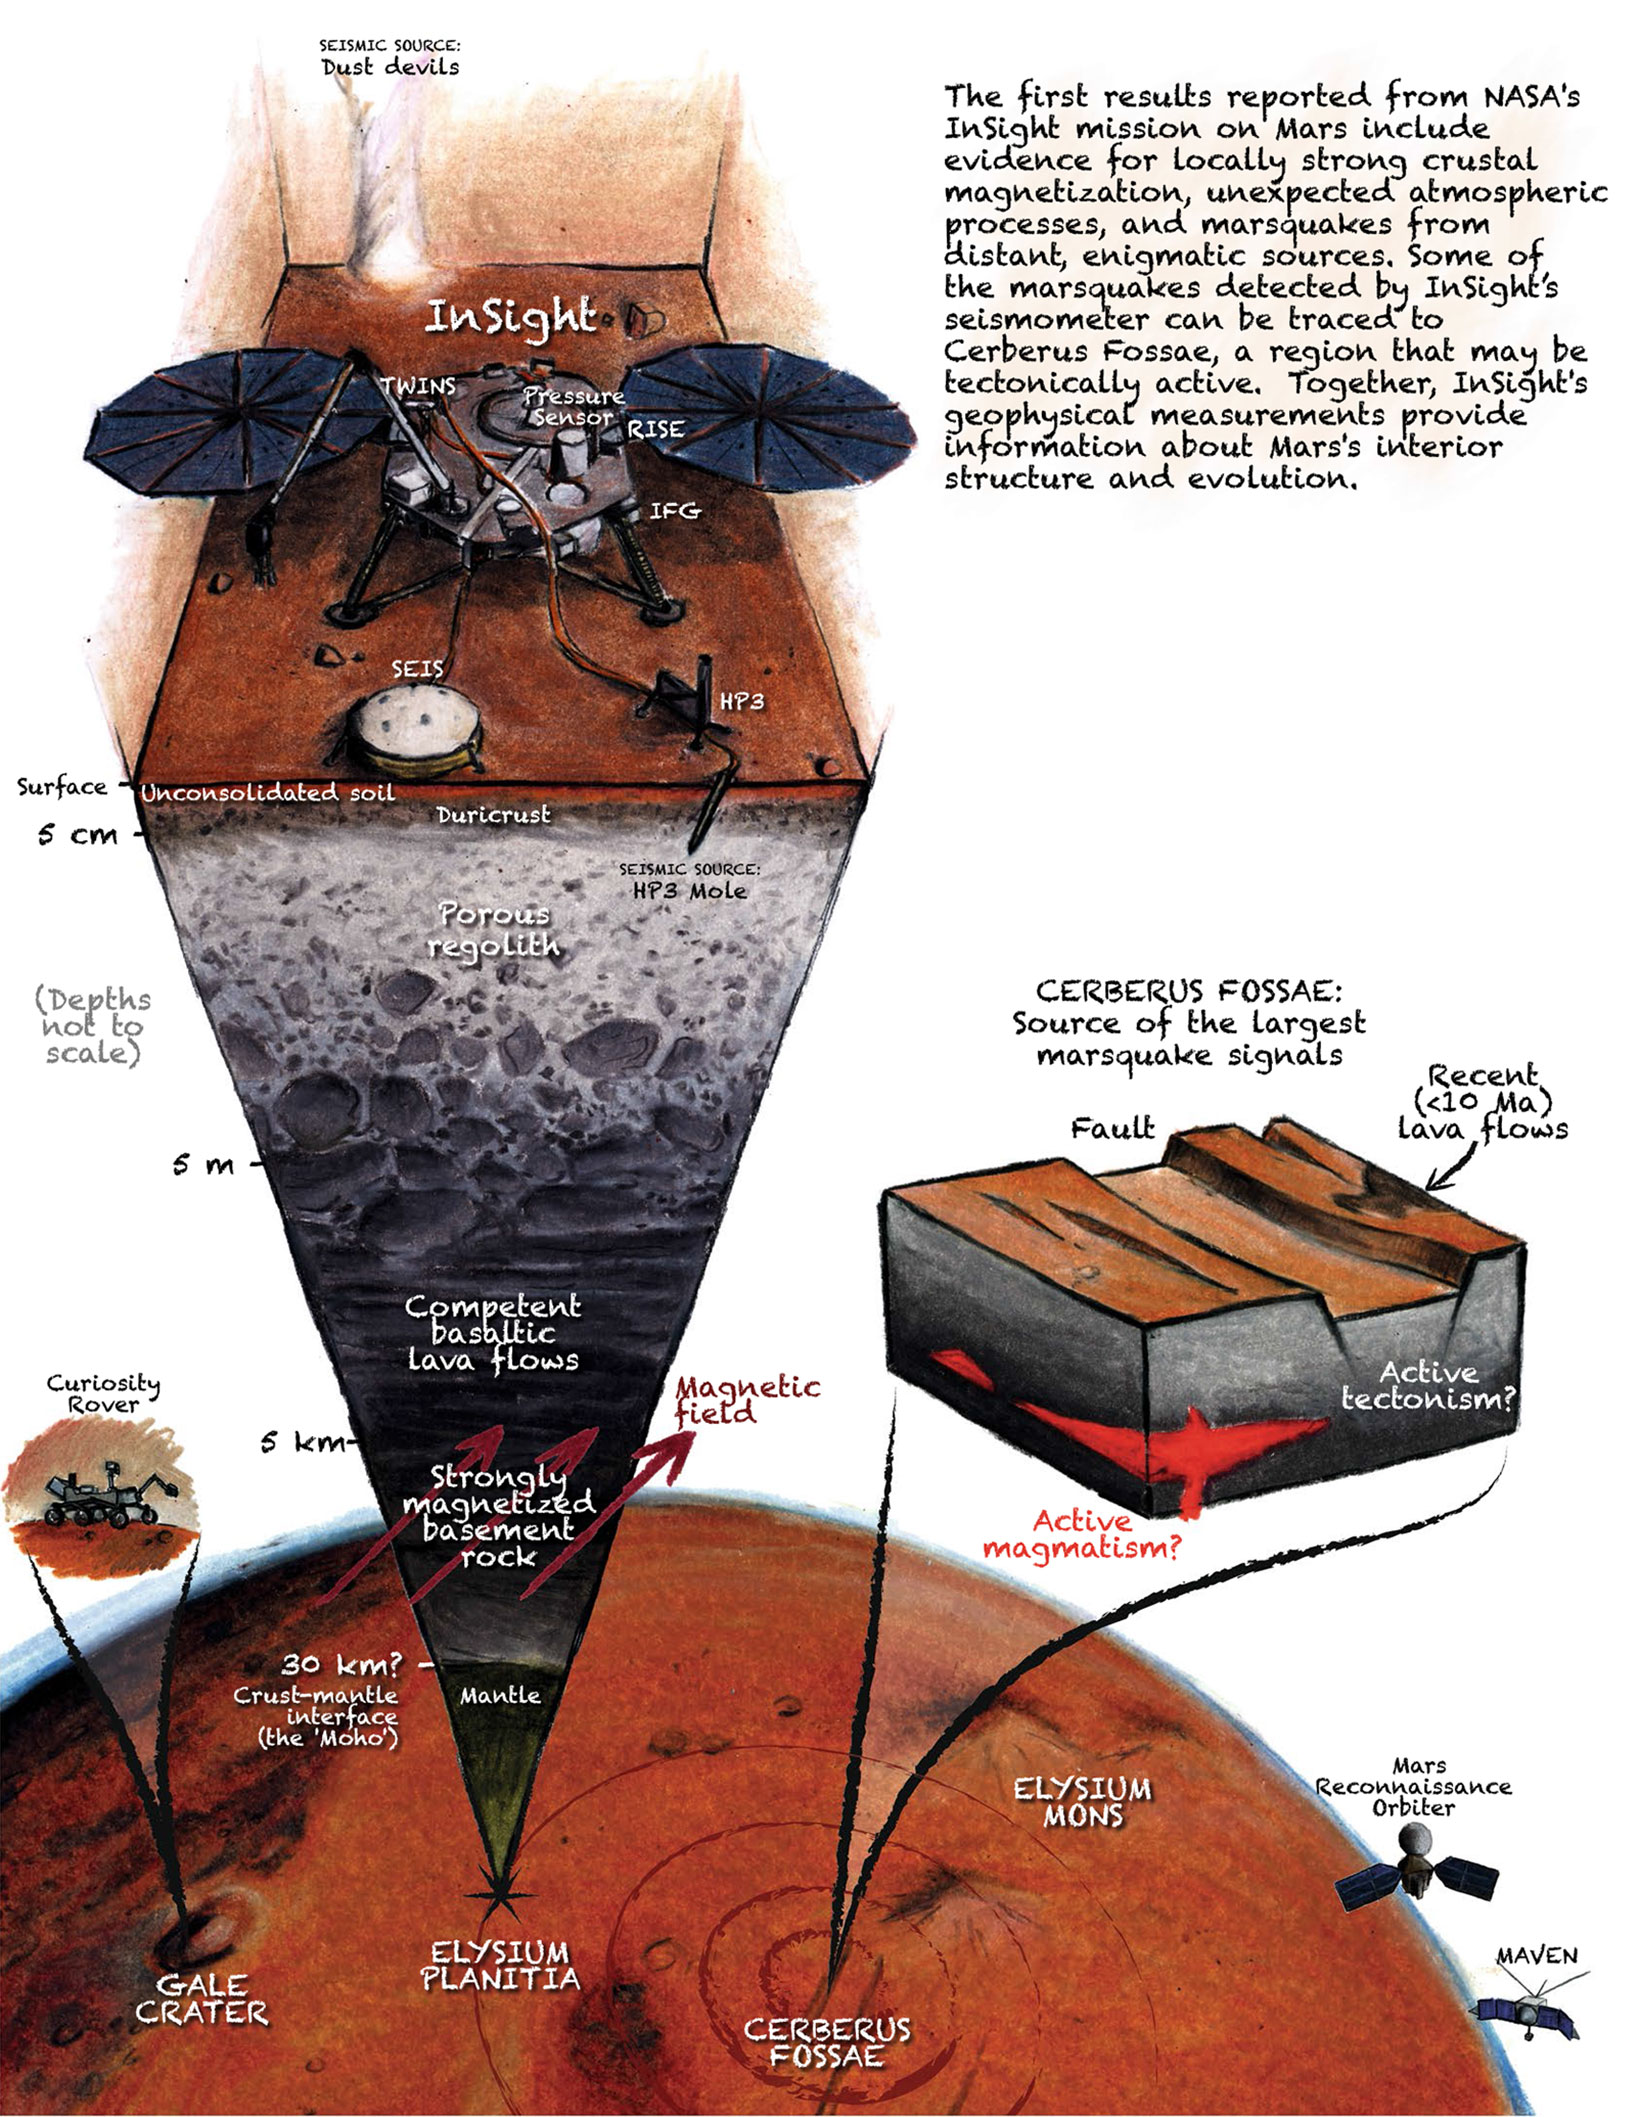 Planeta Marte nasa Insight JPL